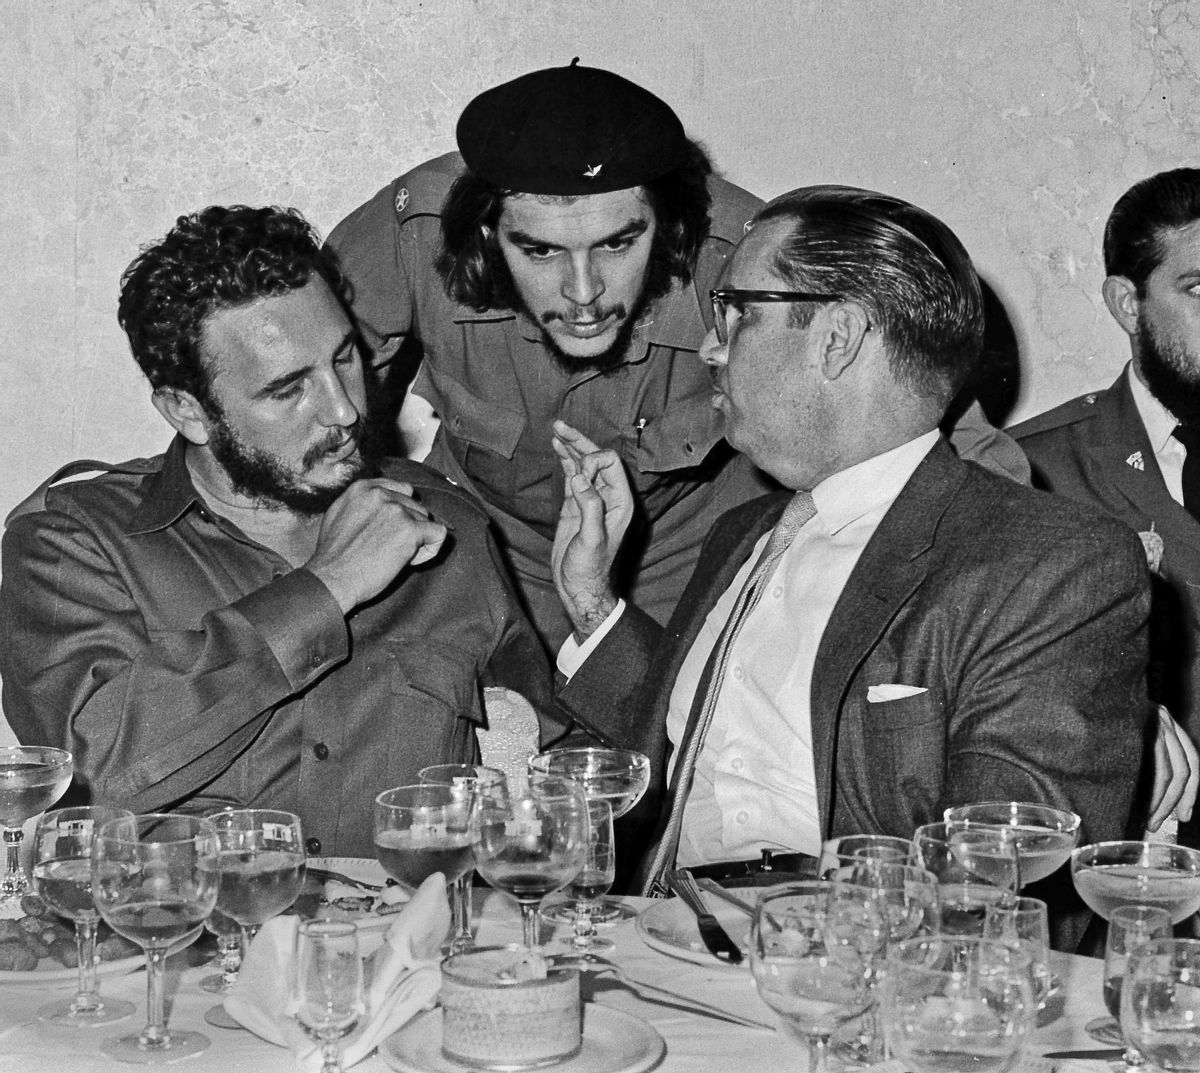 """FILE - In this 1960 file photo, Cuba's revolutionary hero Ernesto """"Che"""" Guevara, center, Cuba's leader Fidel Castro, left, and Cuba's President Osvaldo Dorticos, right, attend a reception in an unknown location in Cuba. Castro has died at age 90. President Raul Castro said on state television that his older brother died at 10:29 p.m. Friday, Nov. 25, 2016. (AP Photo/Prensa Latina via AP Images, File) (AP)"""